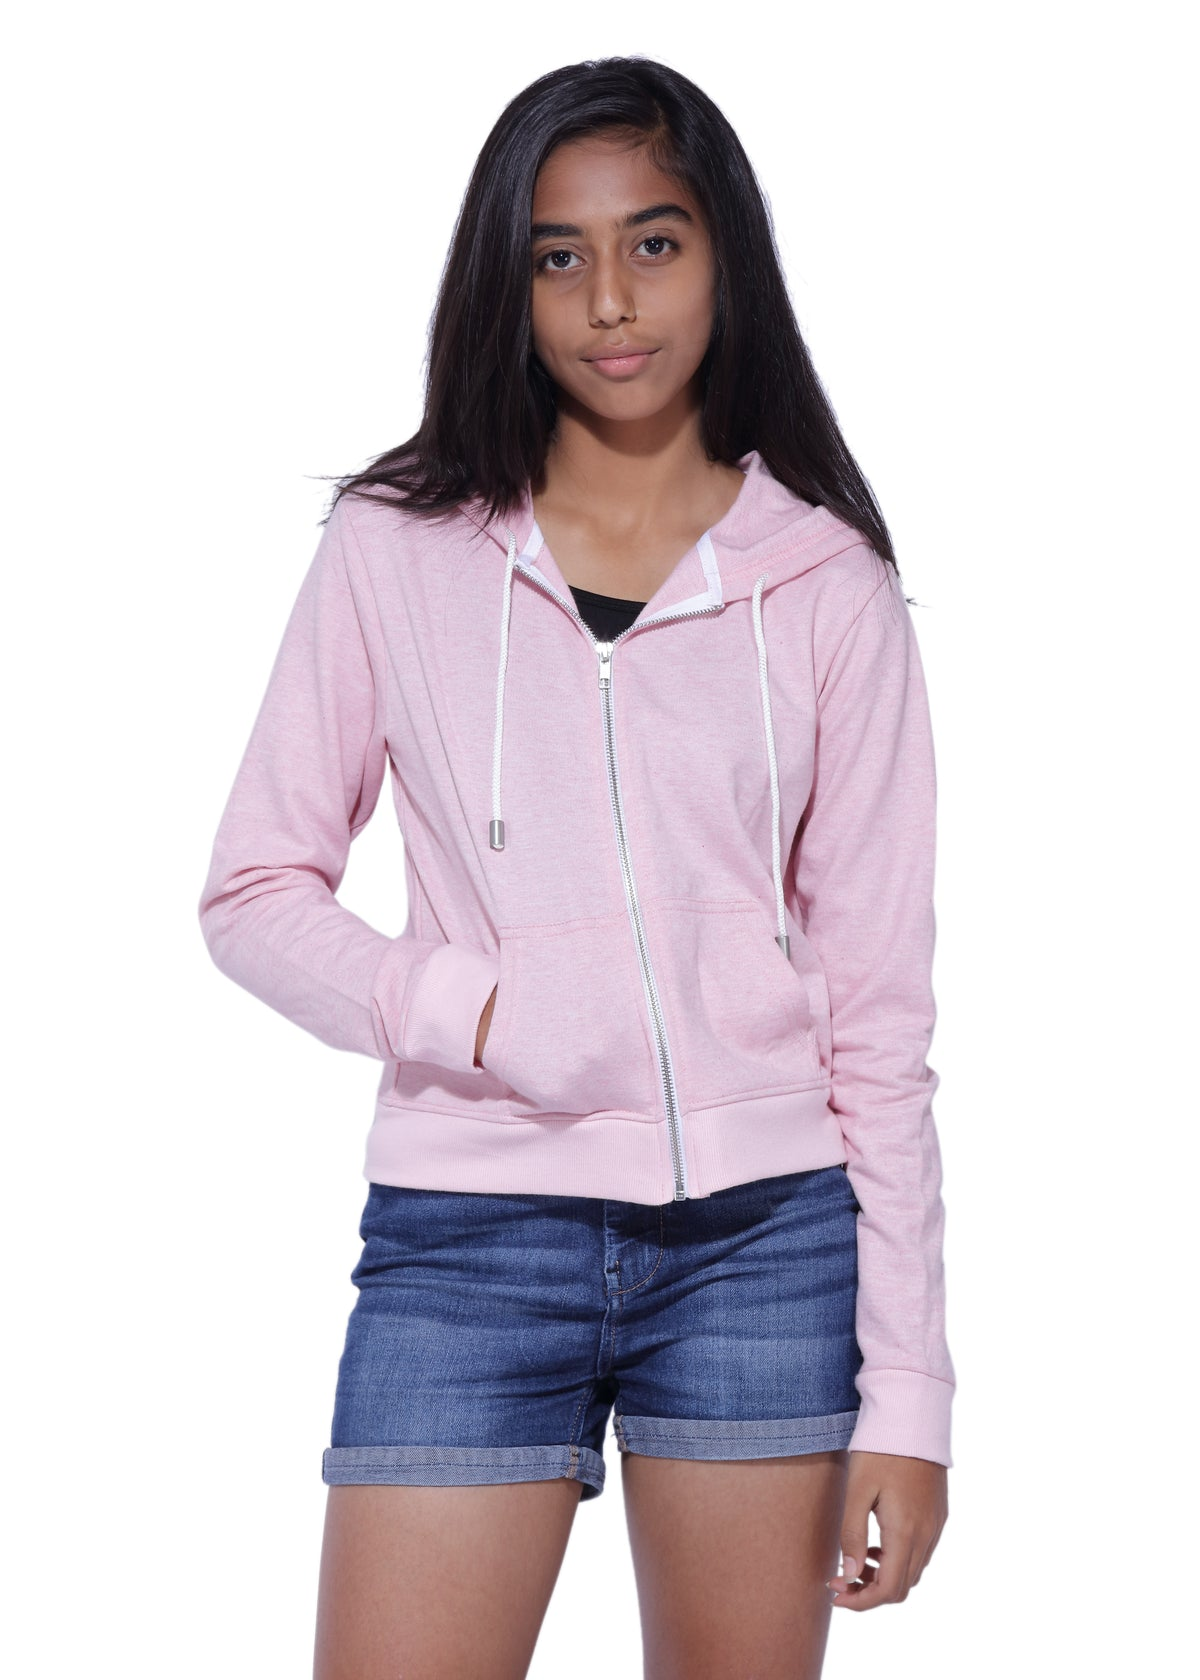 Pink hoodie for teenage girls